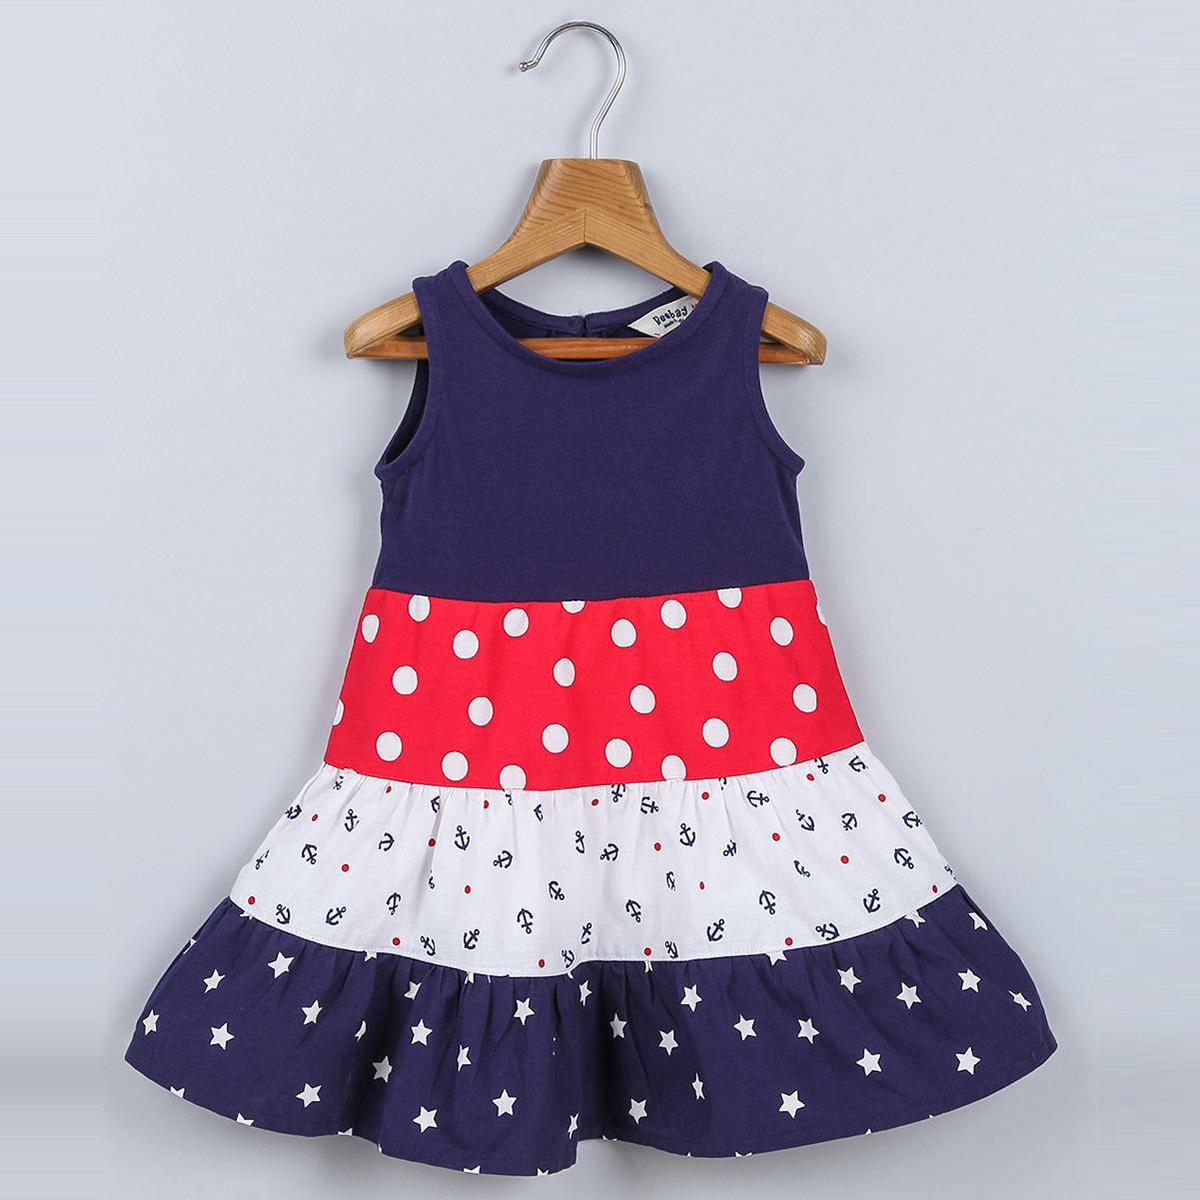 Beebay - Navy Colored Tiered Star & Polka Print Cotton Dress For Girls